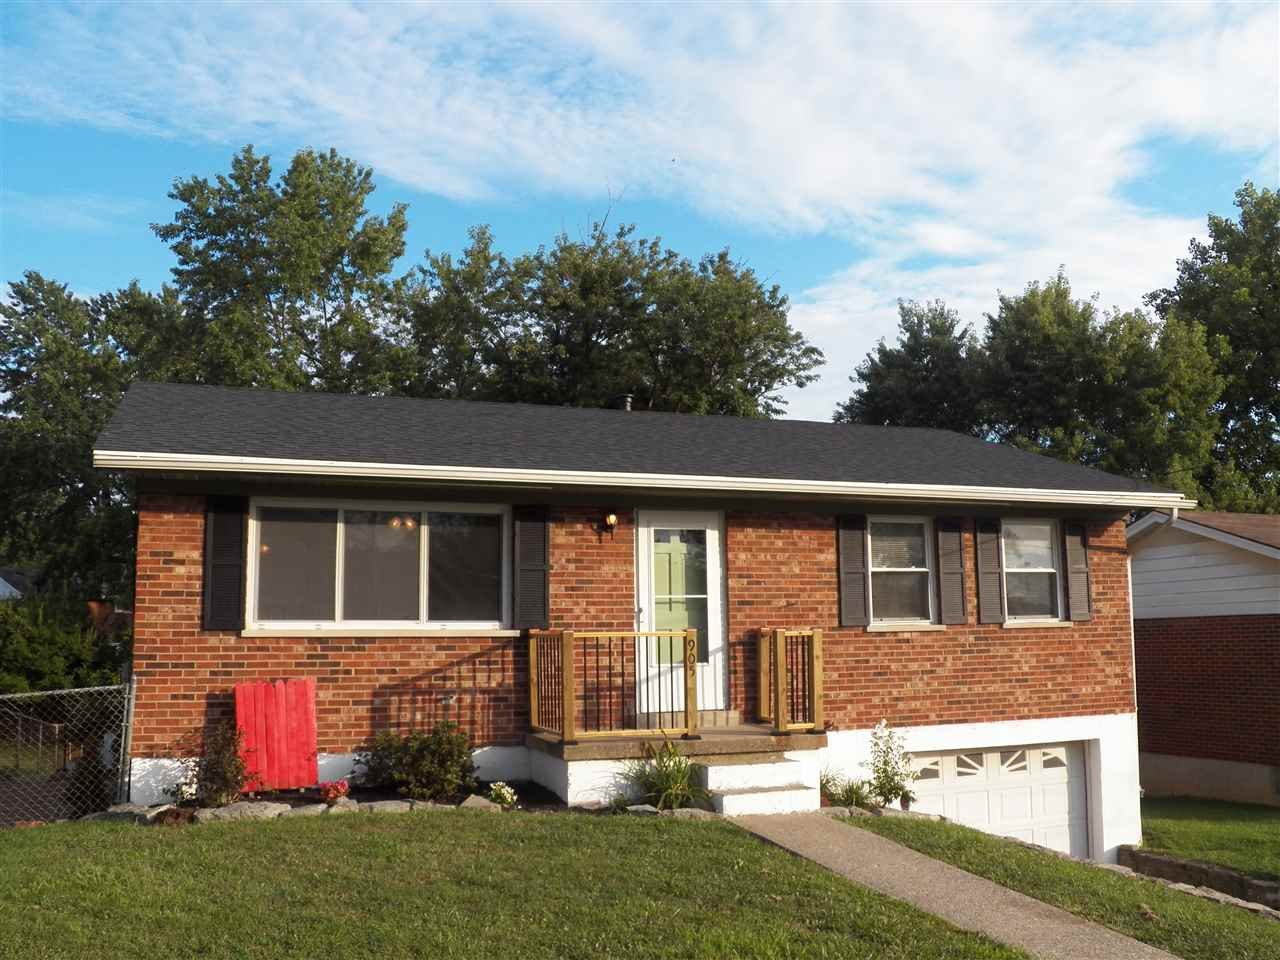 Photo 1 for 905 Loraine Covington, KY 41011